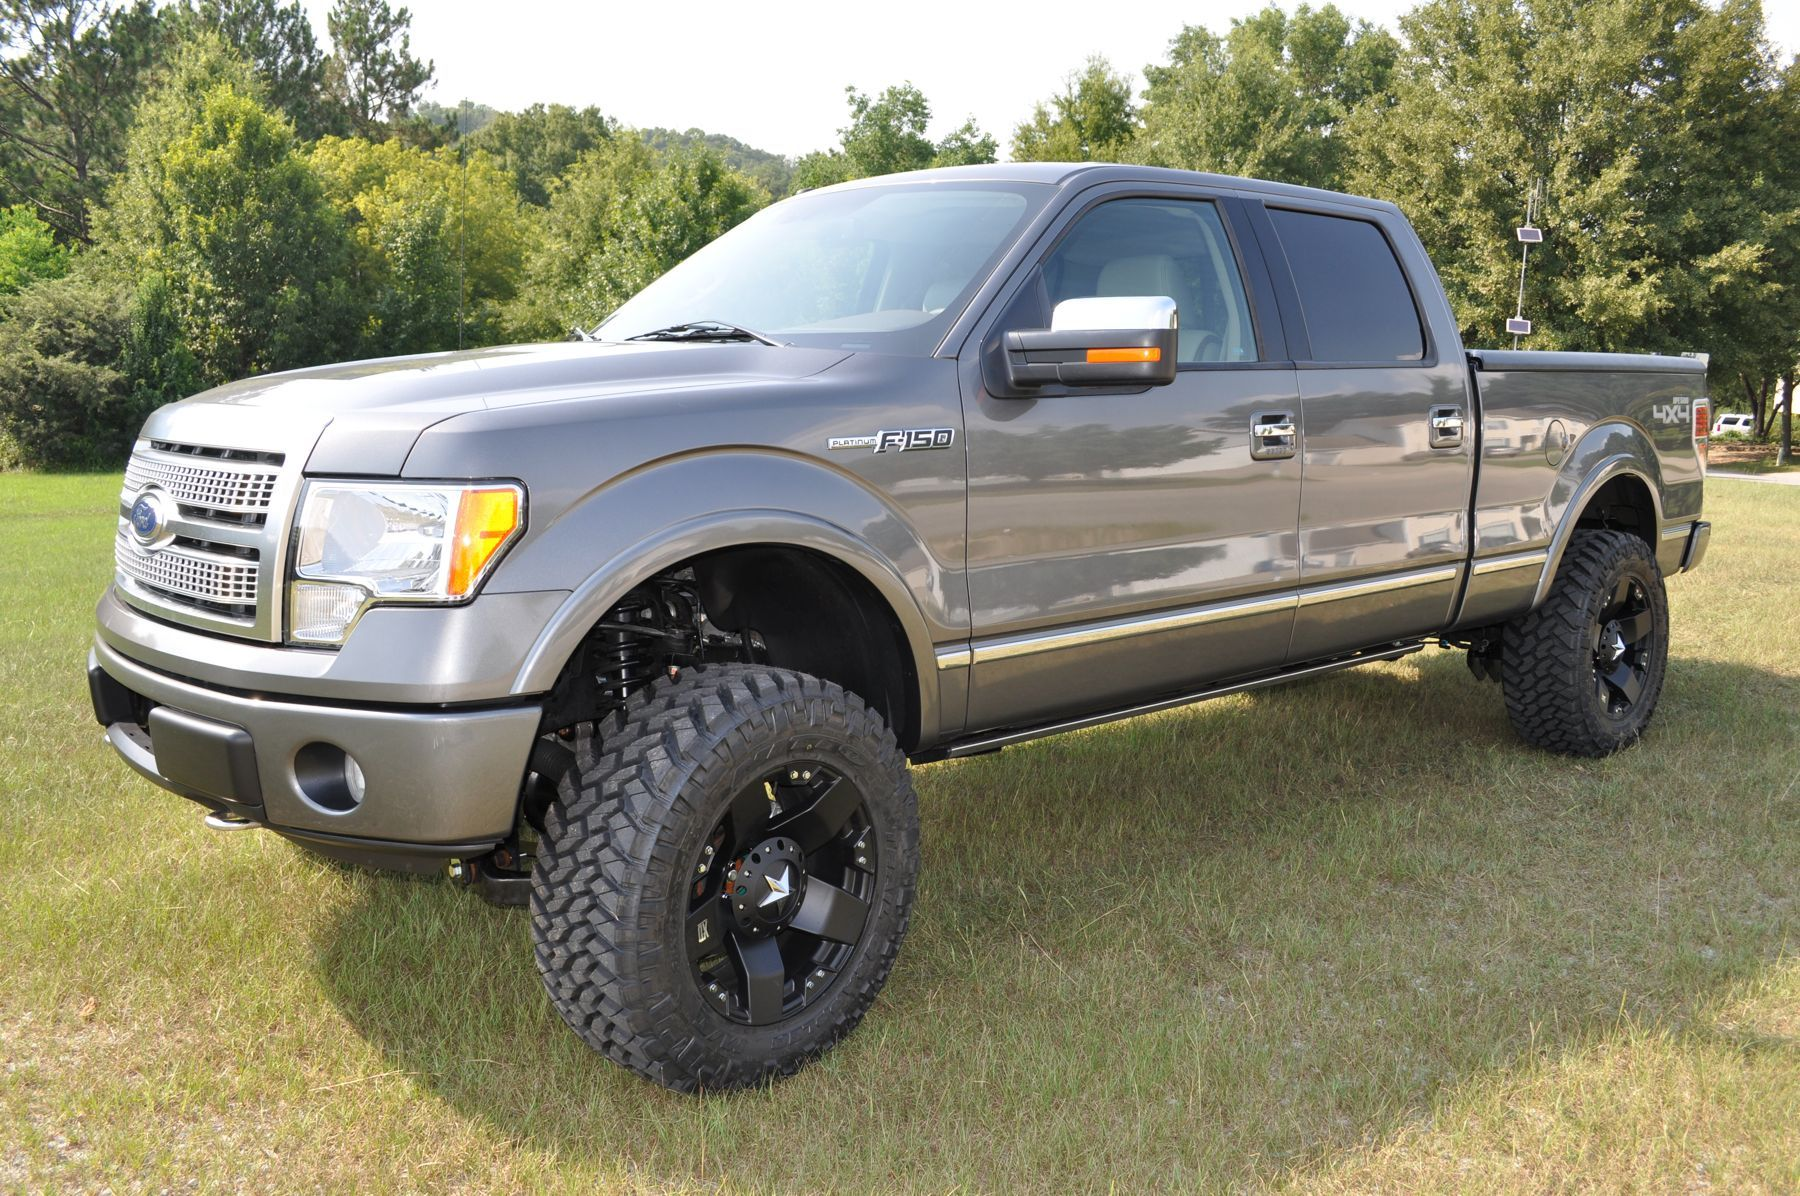 2013 ford f 150 platinum lifted my 2010 hennessey f 150 platinum over 500hp over 520ftlb tq wallpaper tap8th9q